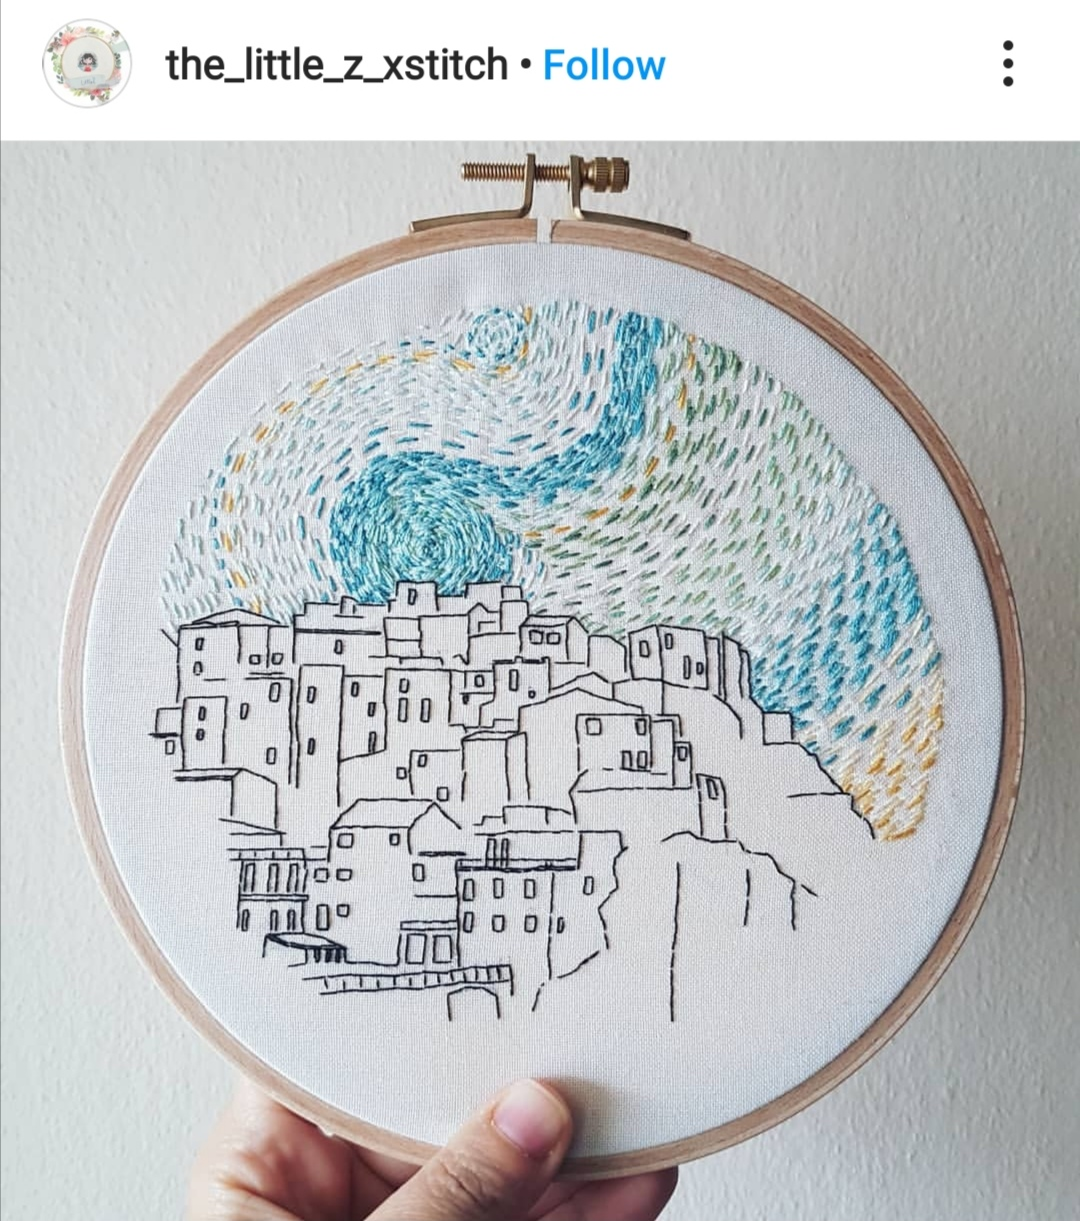 Embroidered Manarola pattern by student of Charles and Elin